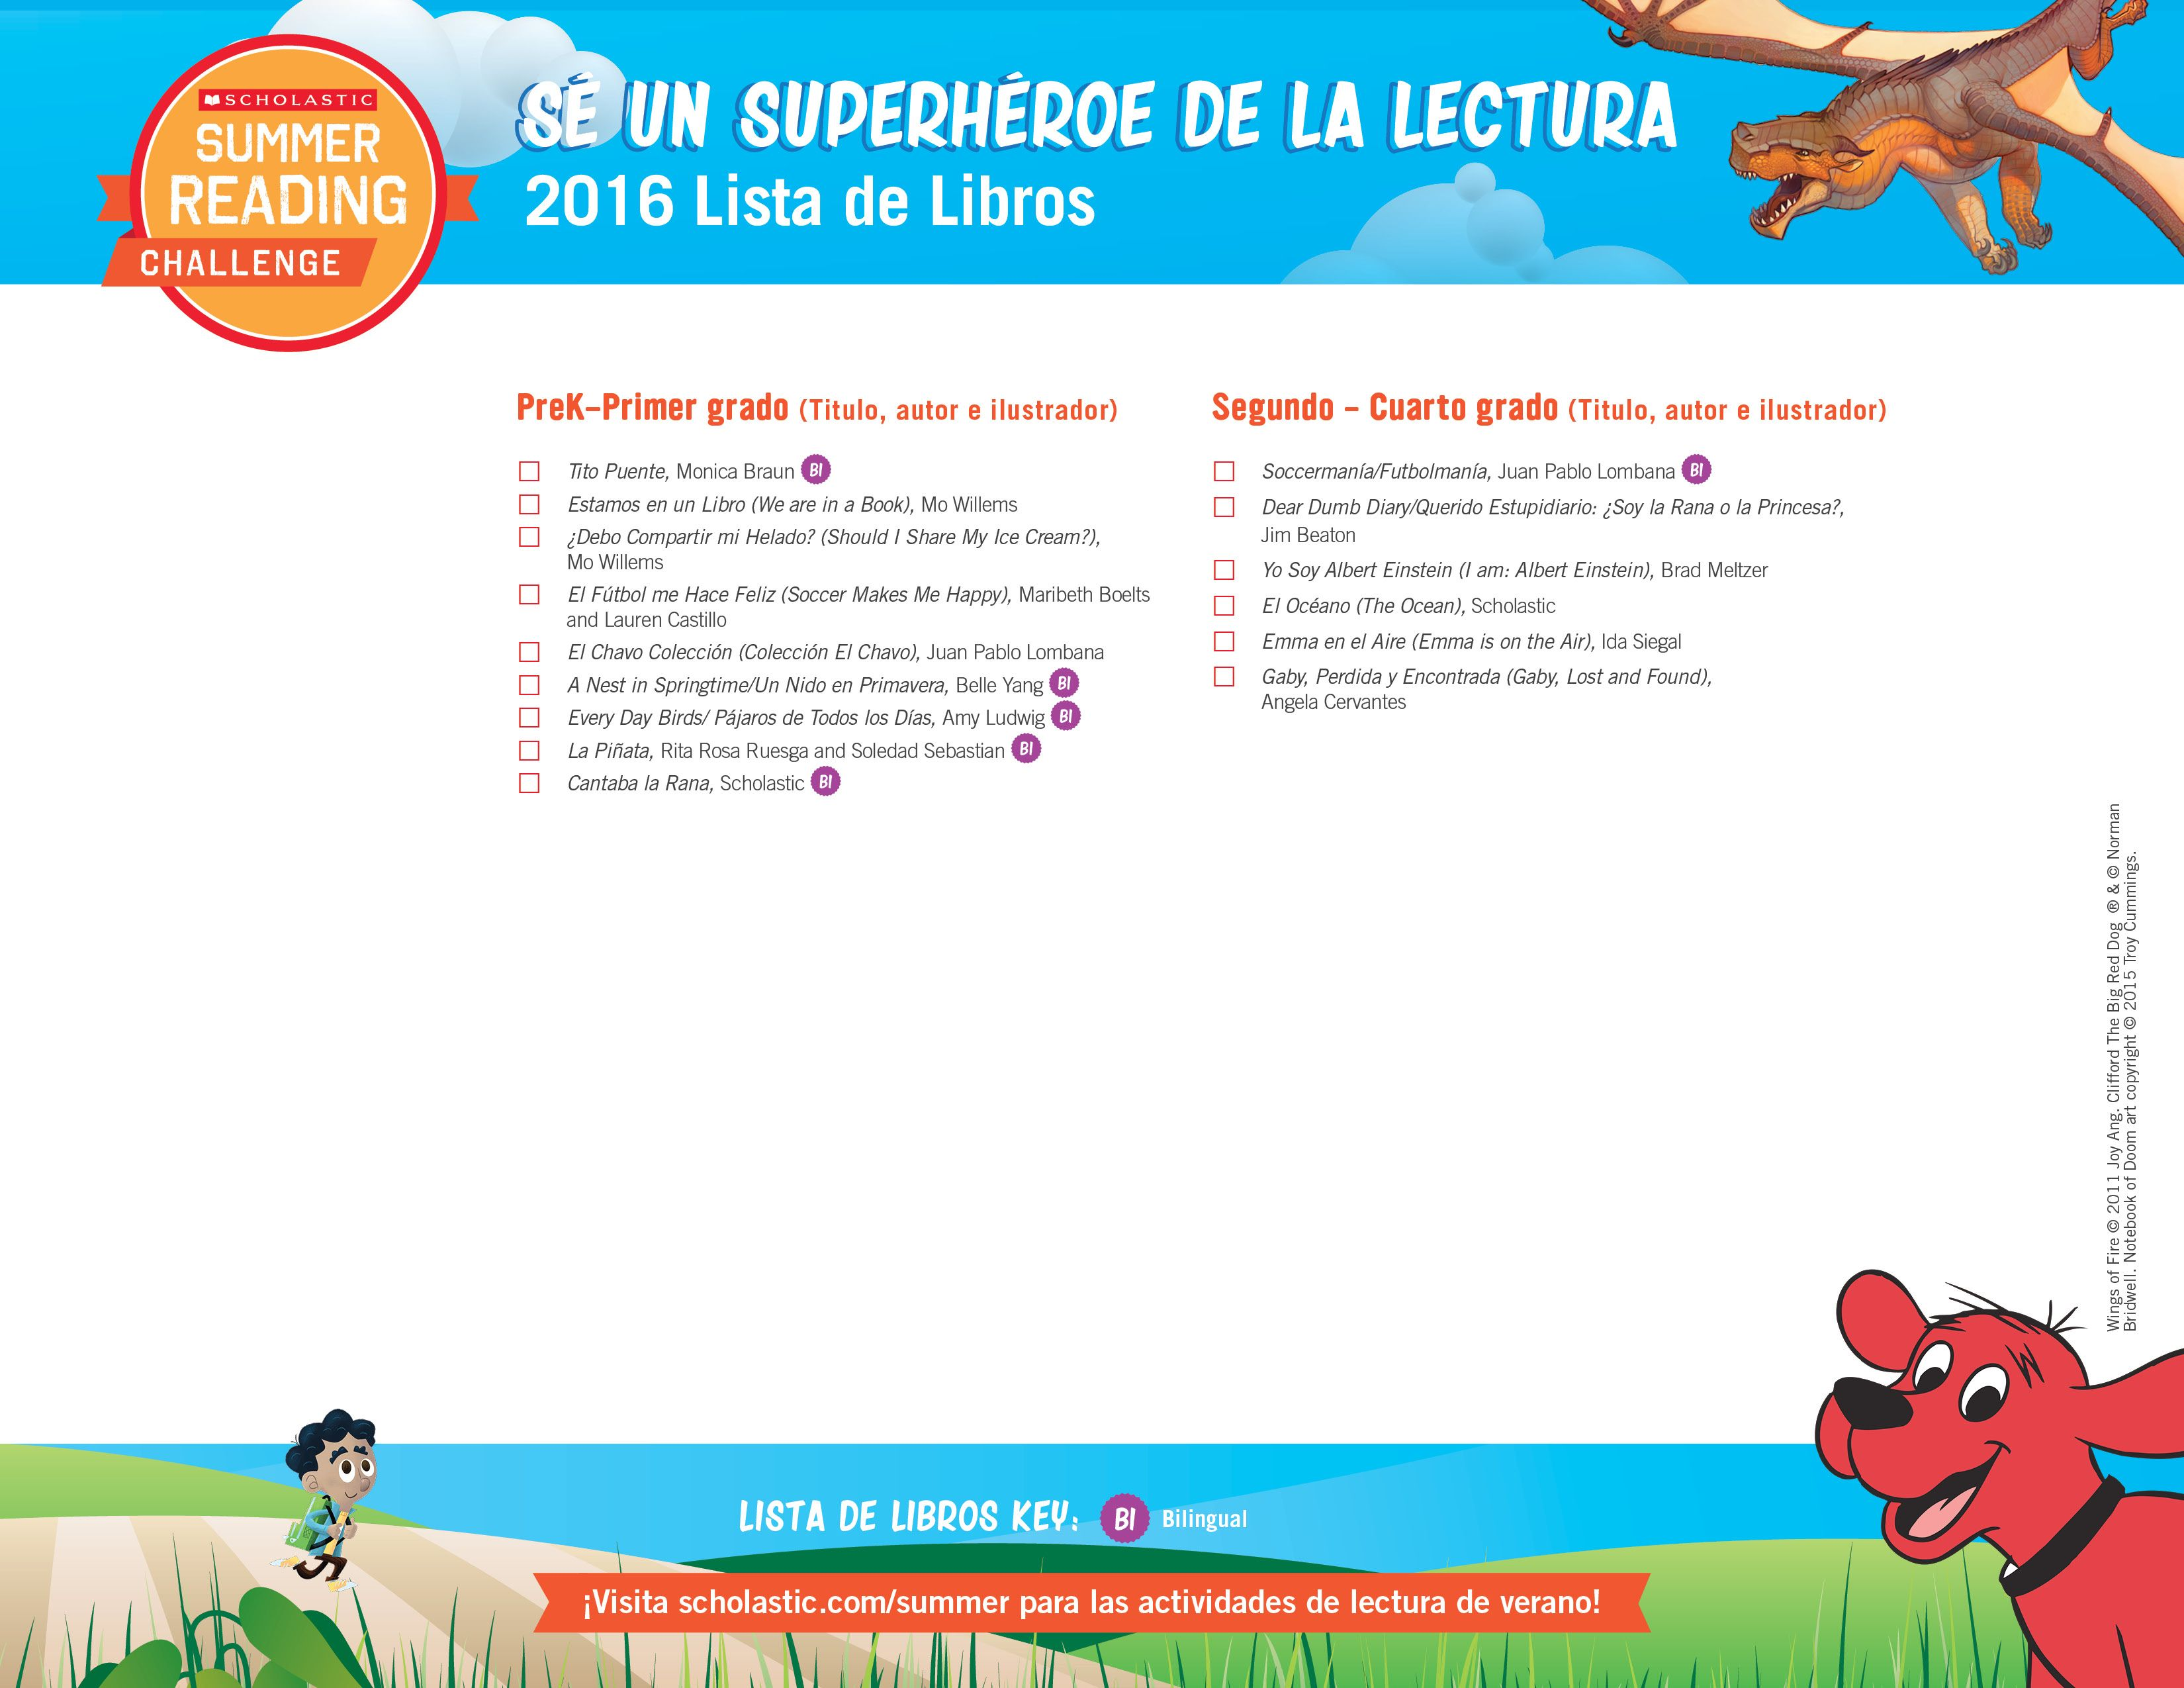 Spanish Version Presenting The 2016 Summer Reading Book List So